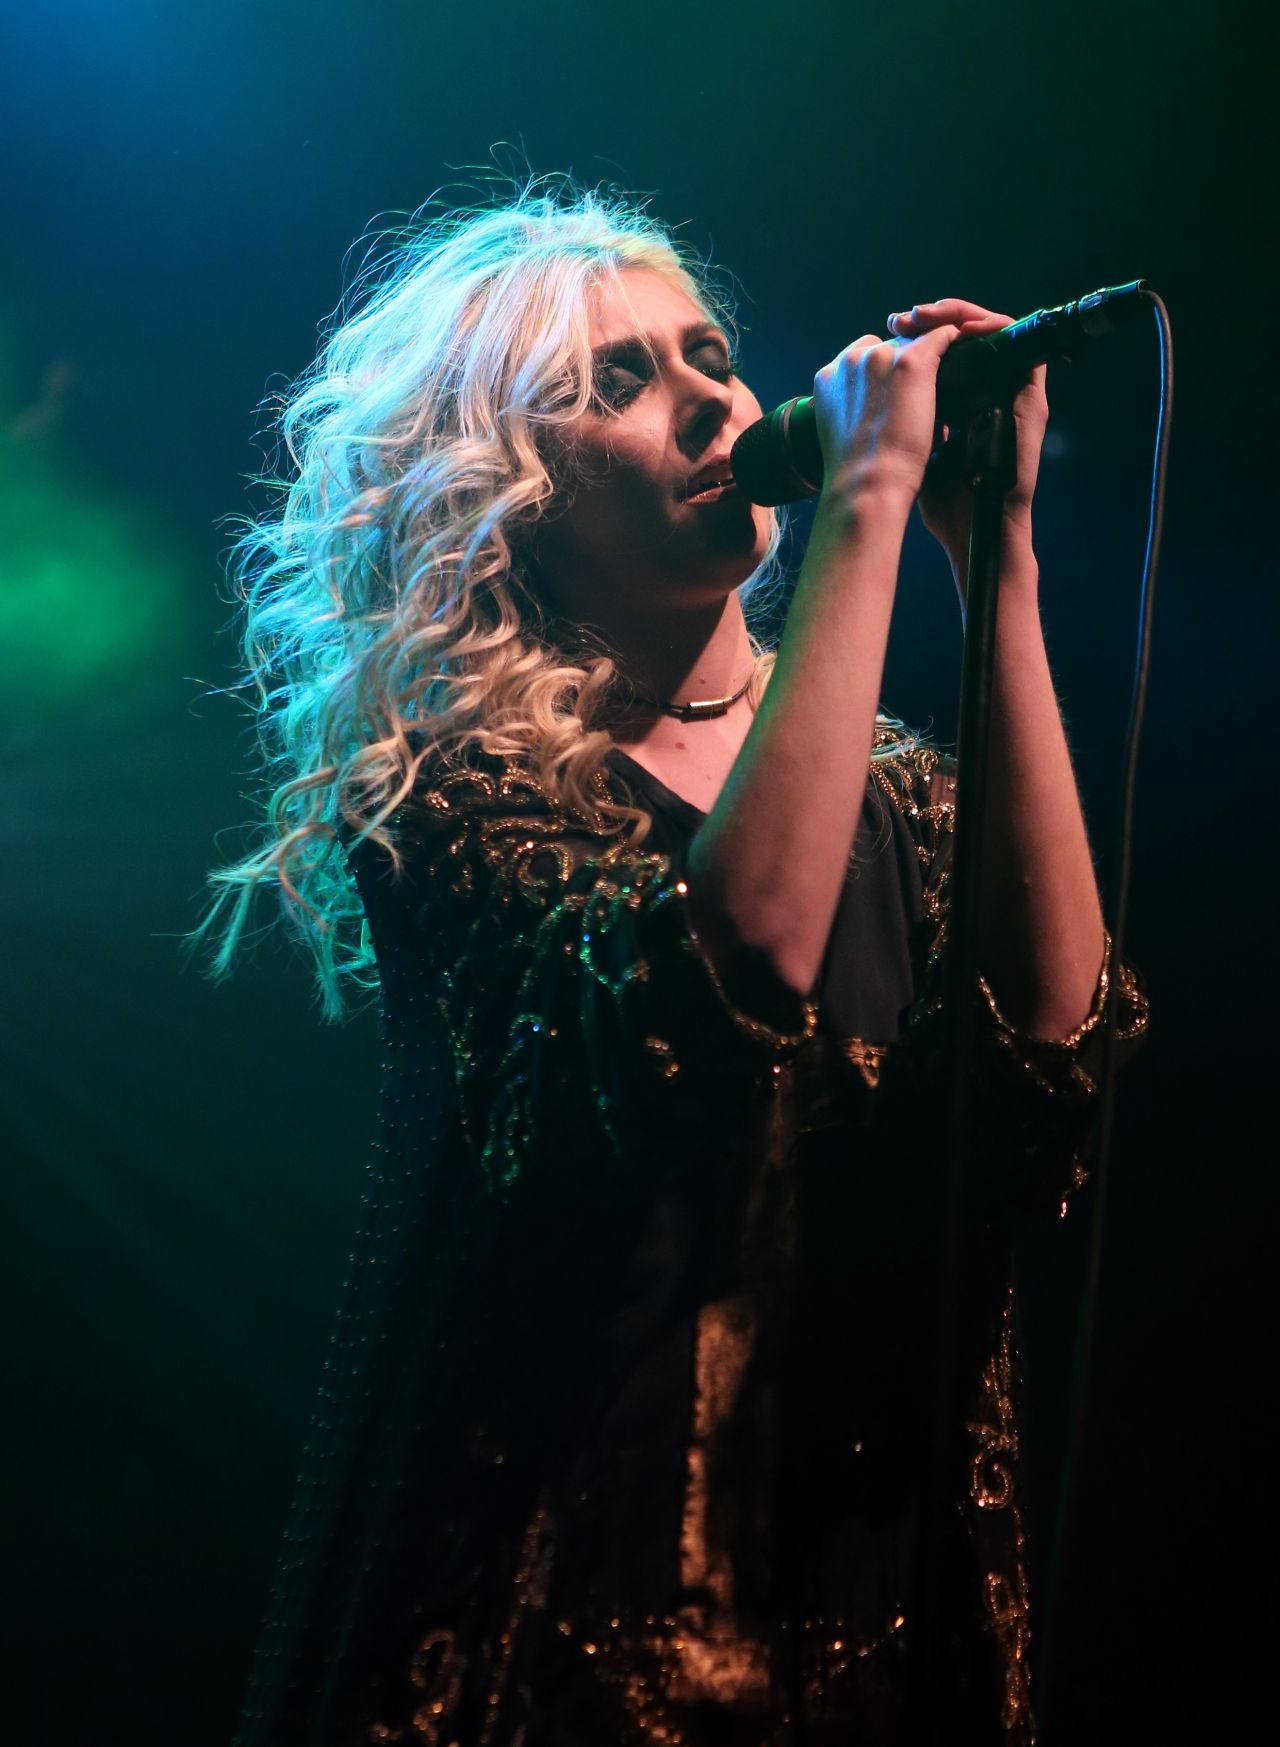 Taylor Momsen - Gig at Electric Ballrooms in London - March 2014